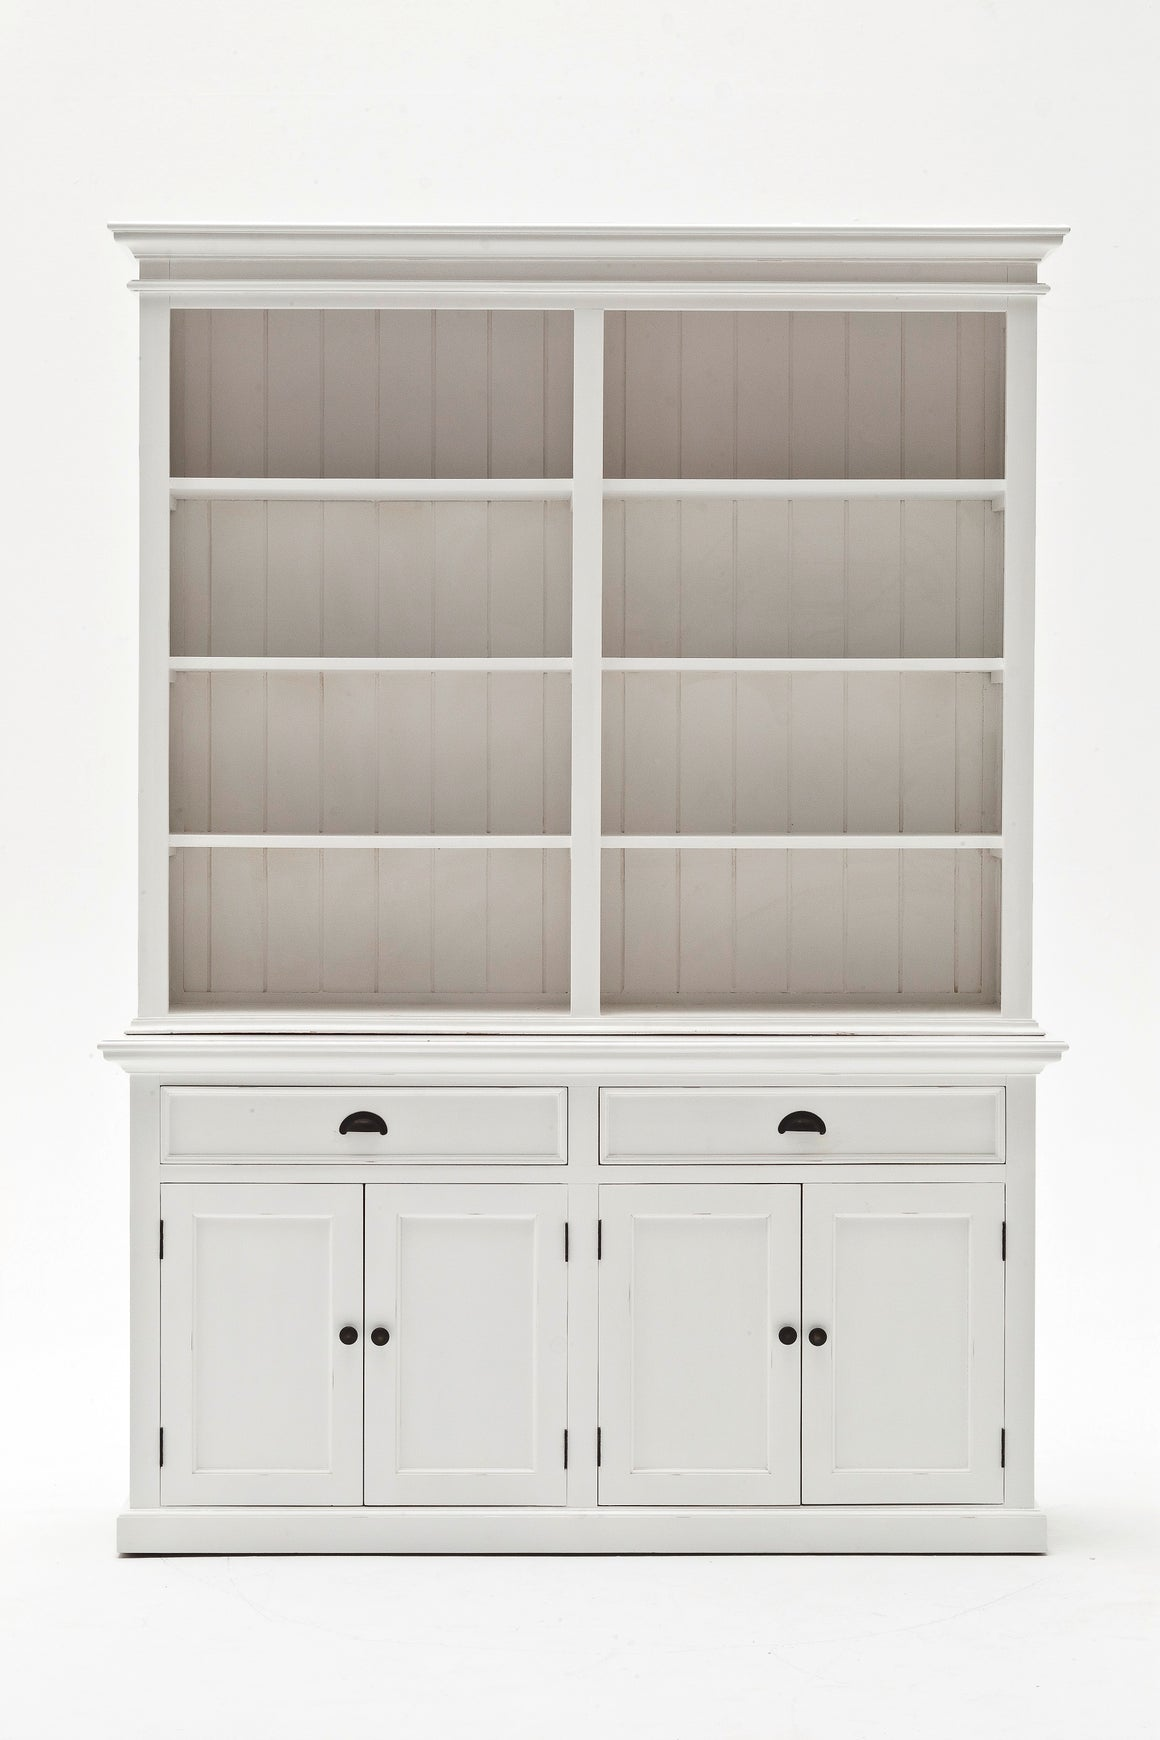 Halifax BCA599 Hutch Bookcase Unit